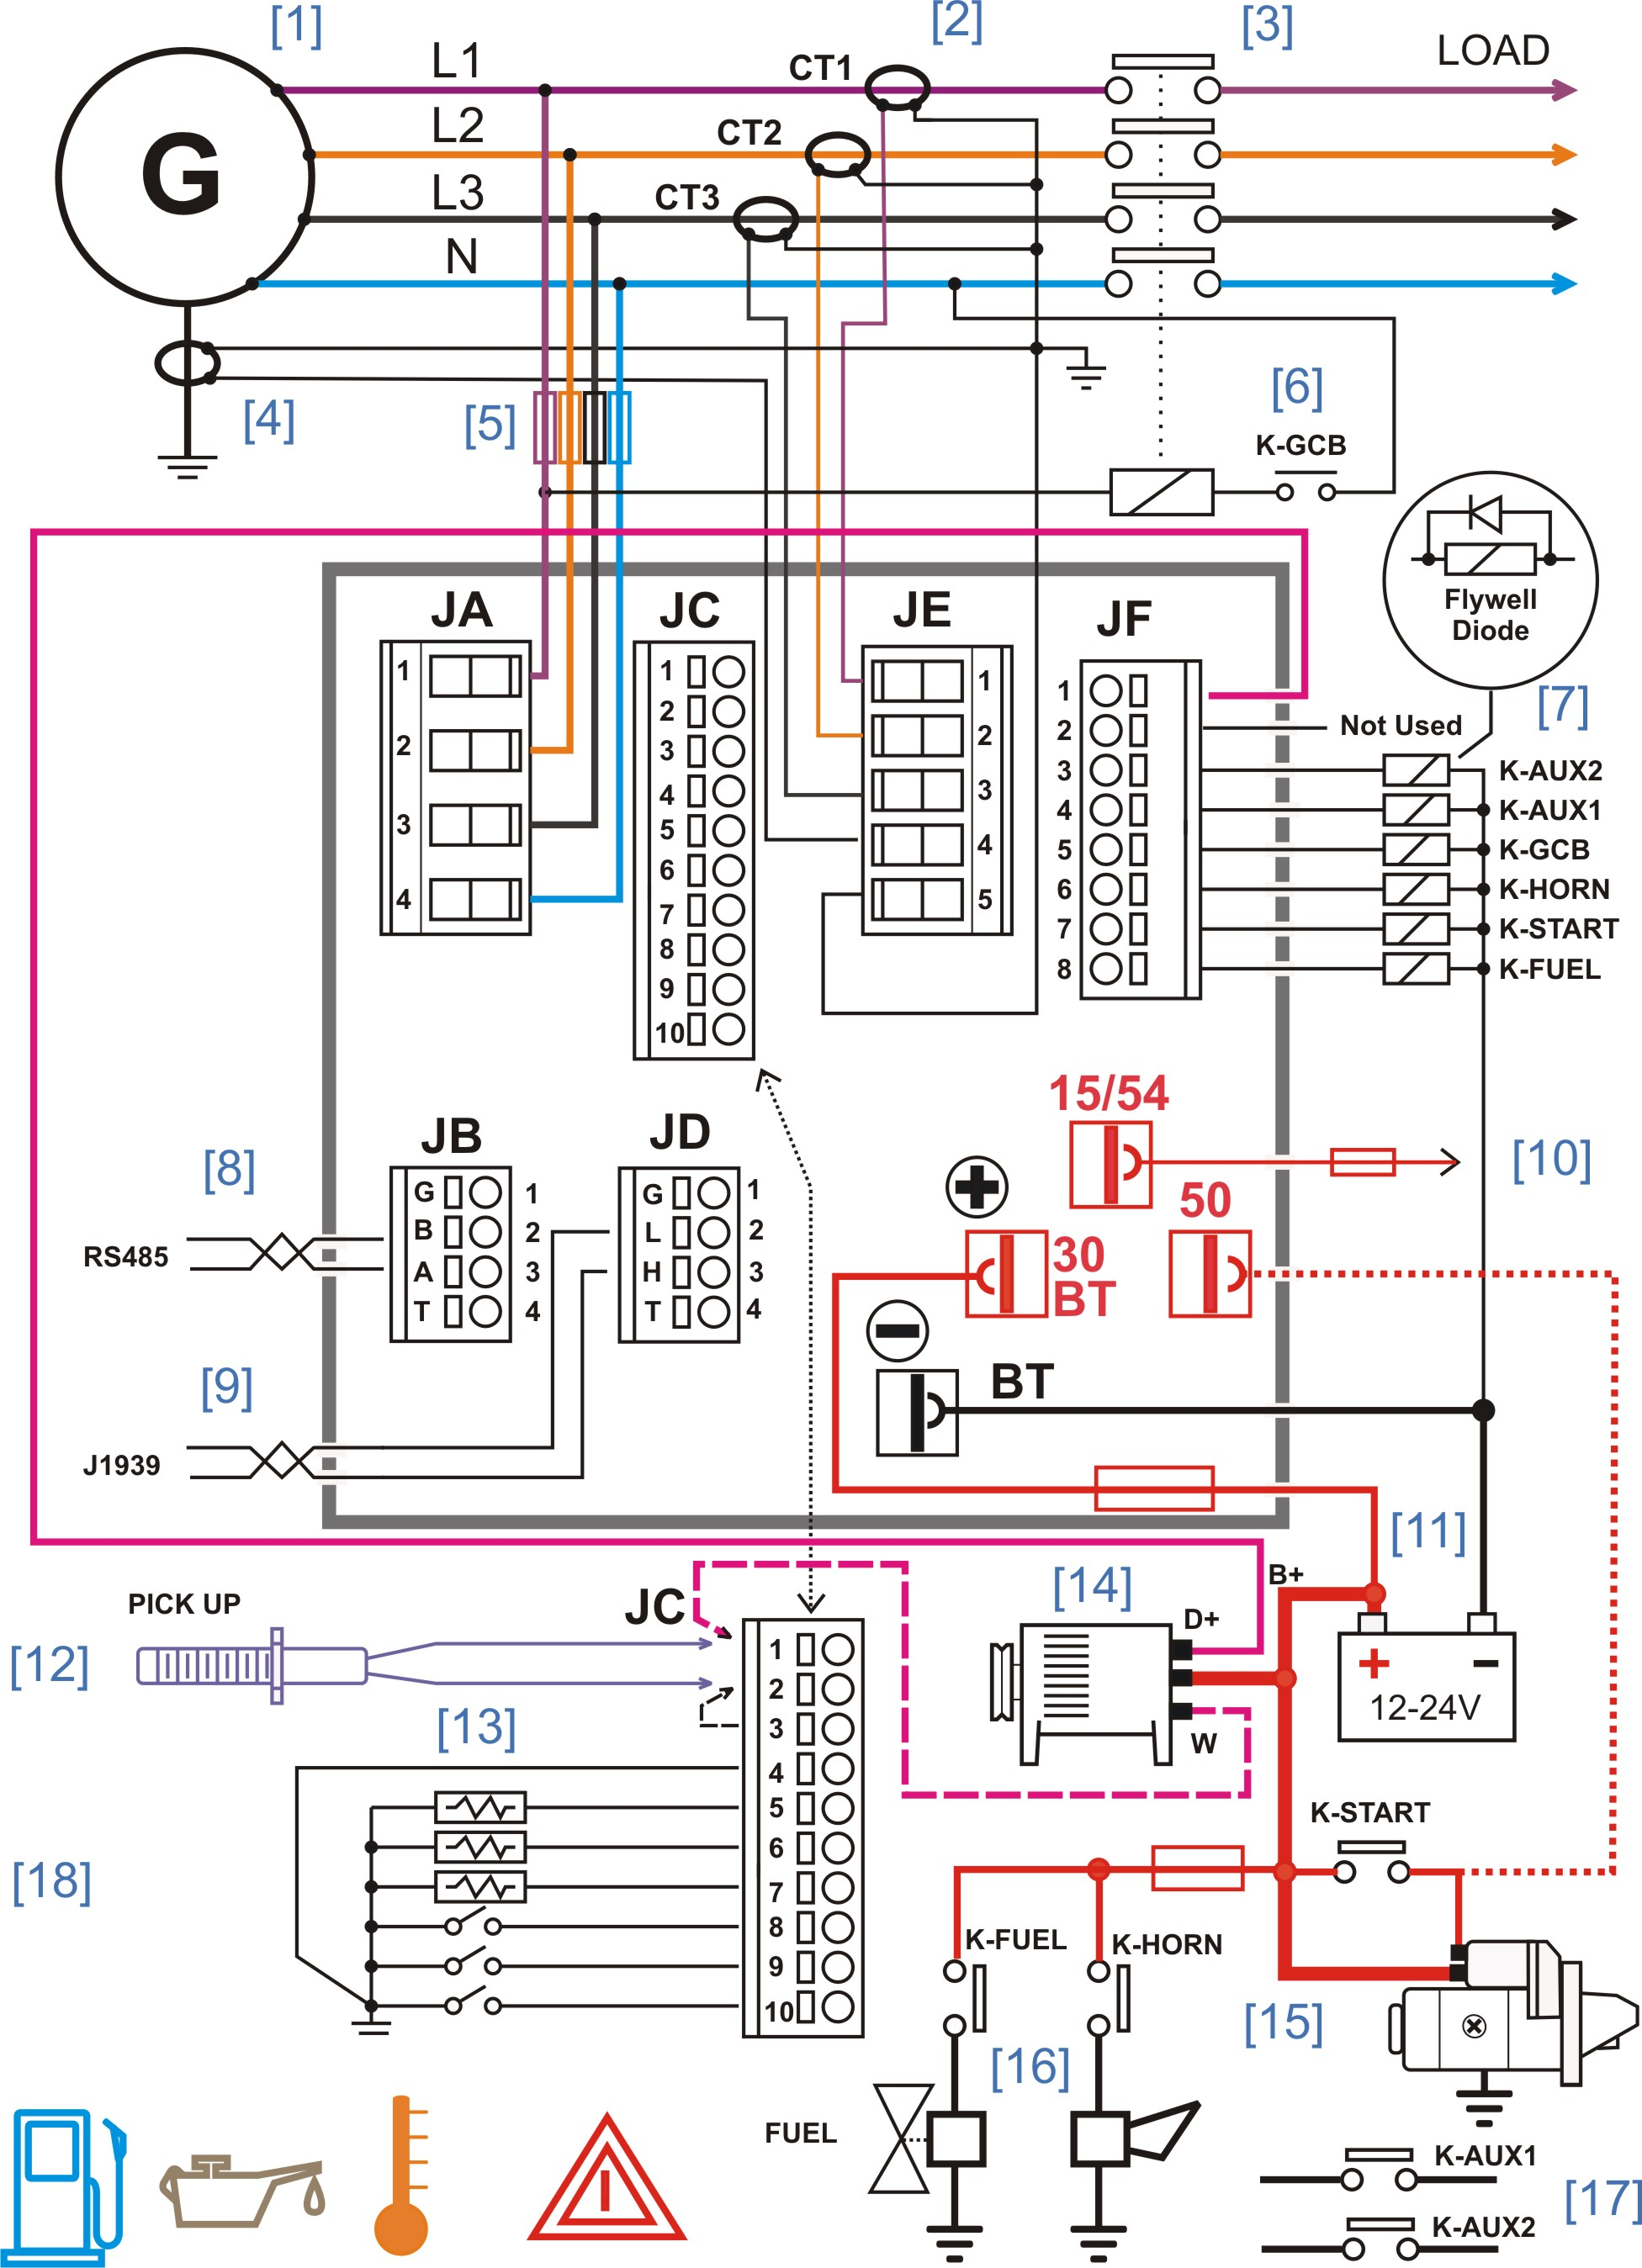 Generator Controller Wiring Diagram generator controller wiring diagram genset controller controller wire diagram for 3246e2 lift at metegol.co